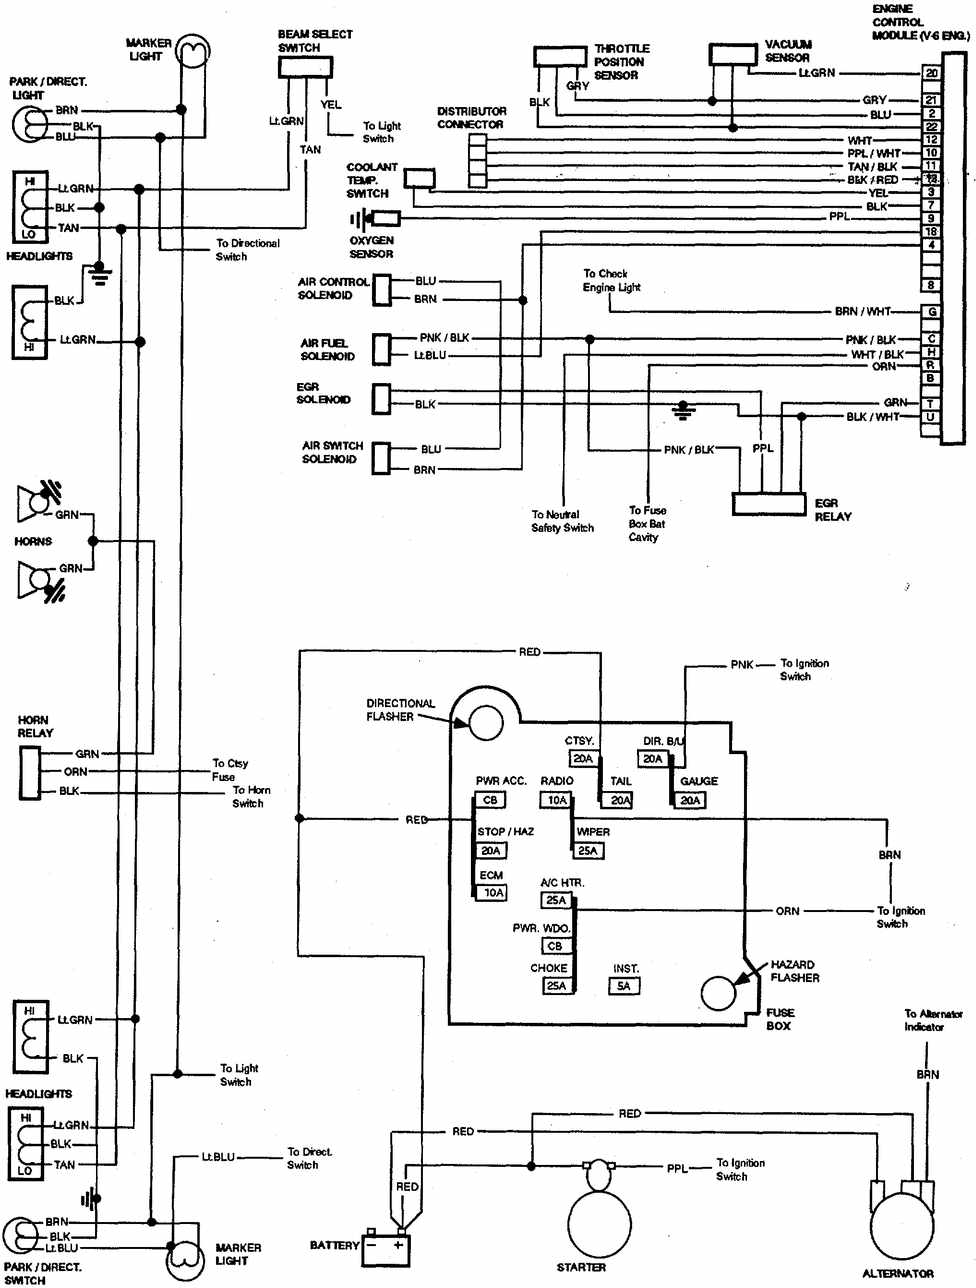 2001 chevy suburban 2500 wiring diagram